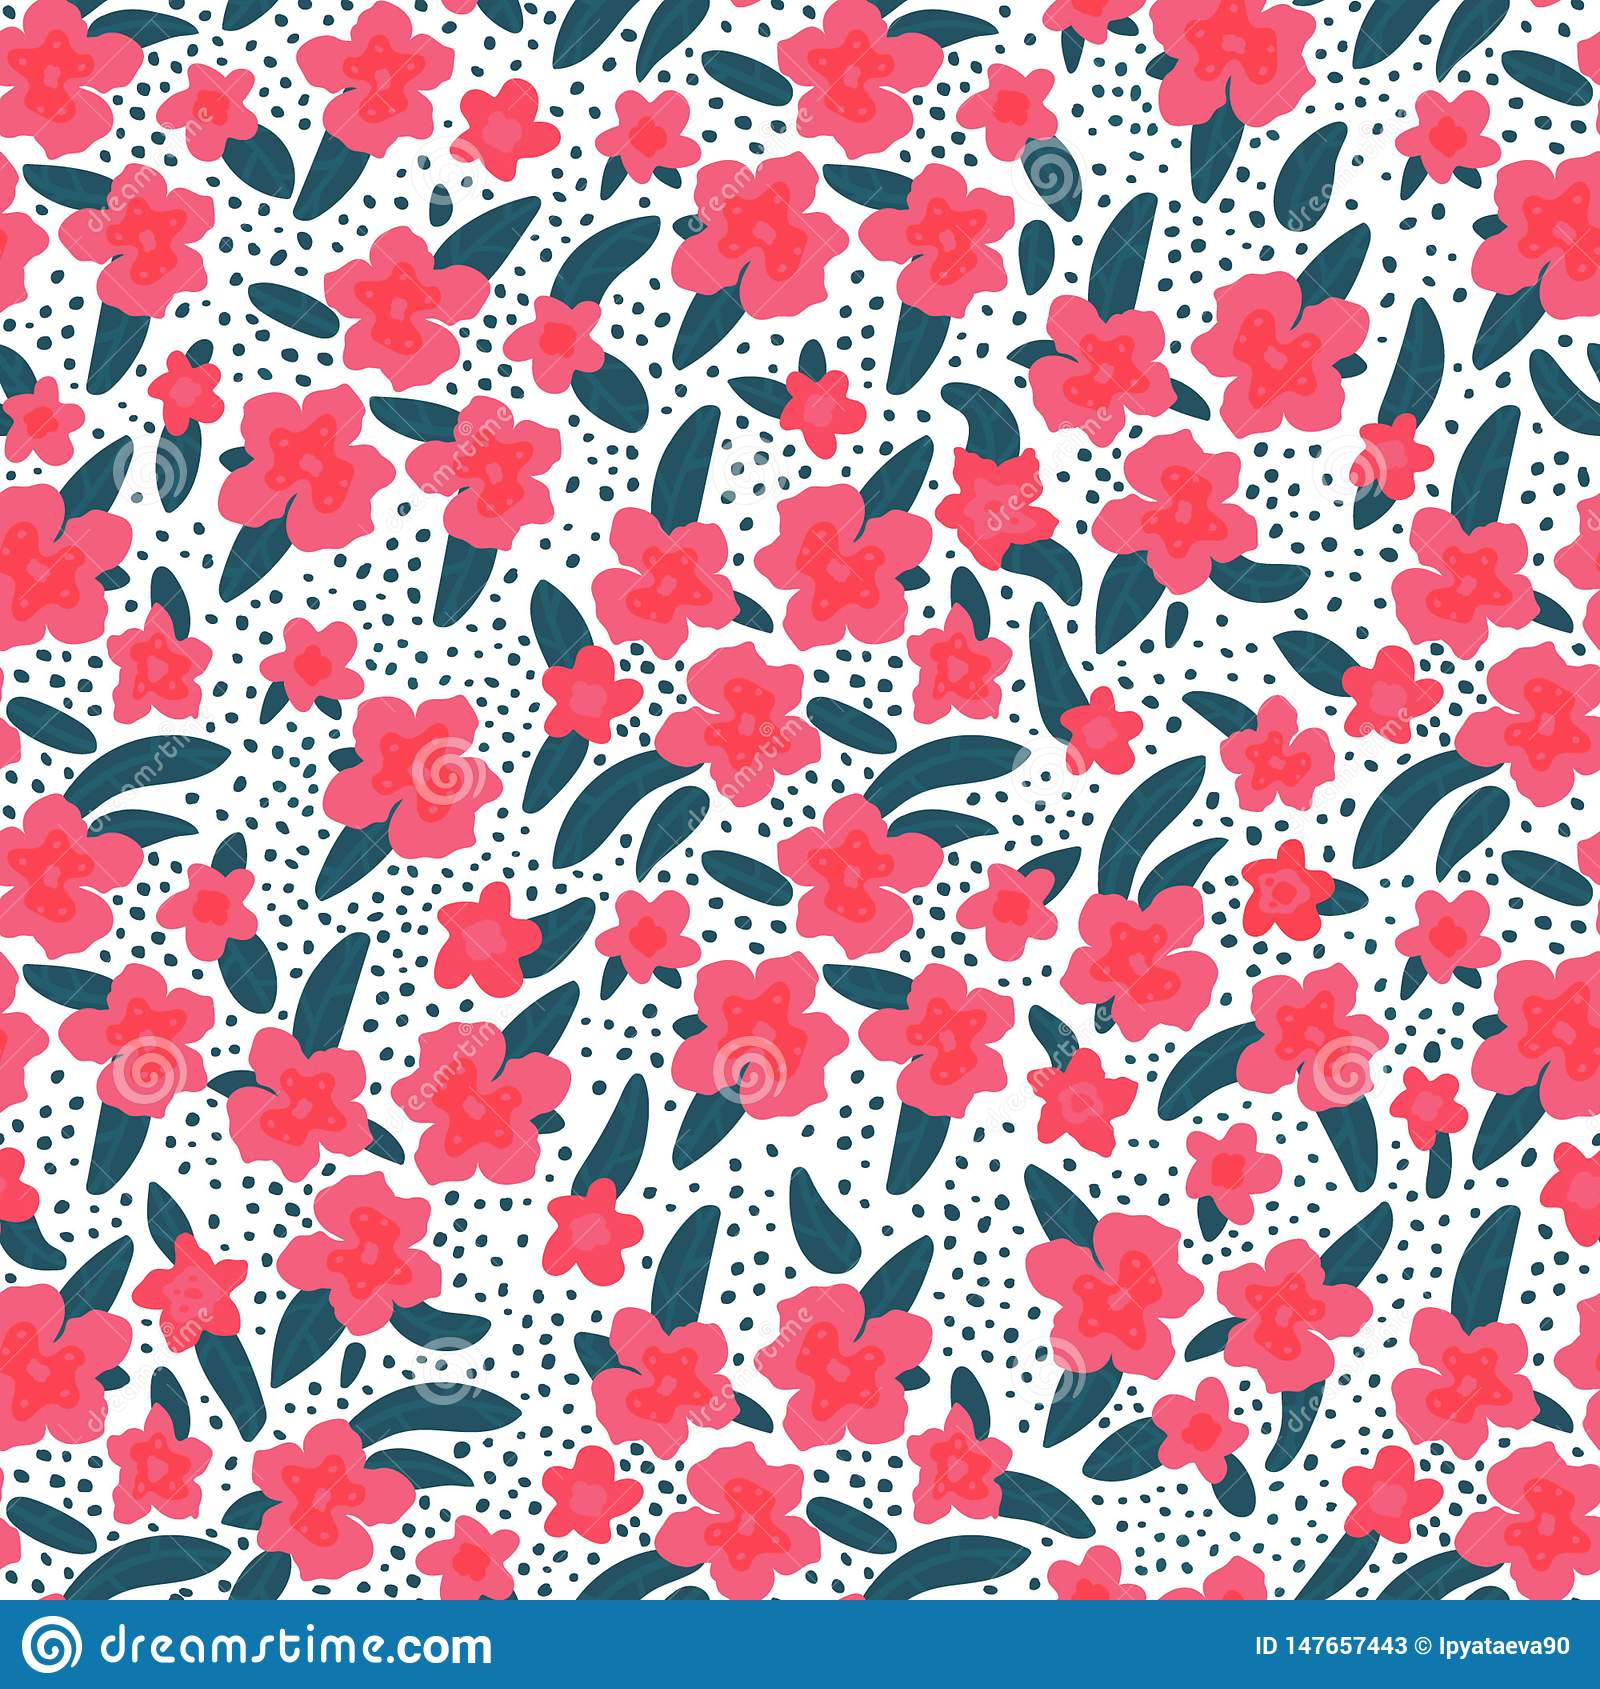 Seamless pattern of tropical flowers and leaves on a white background. Vector illustration in hand drawn flat